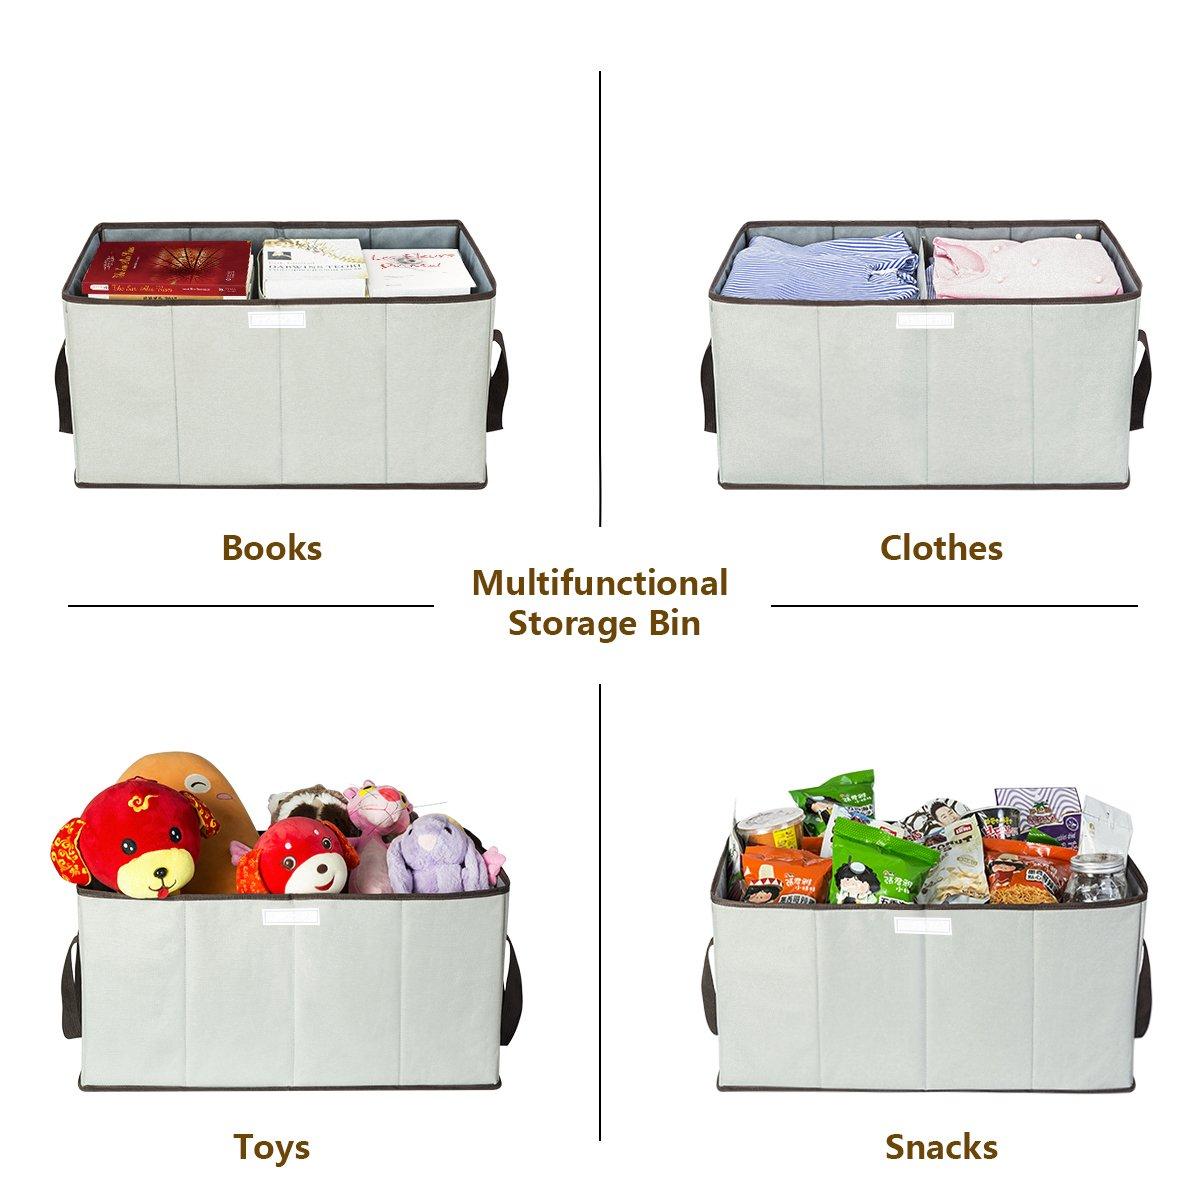 Collapsible Toy Chest Large Toy Box Huge Oxford Storage Basket with Flip-Top Lid Handles Double Storage Boxes Storage Sorter bin for Kids Dog Bedrooms, Closets, Playroom (Grey) Zero Jet LAG